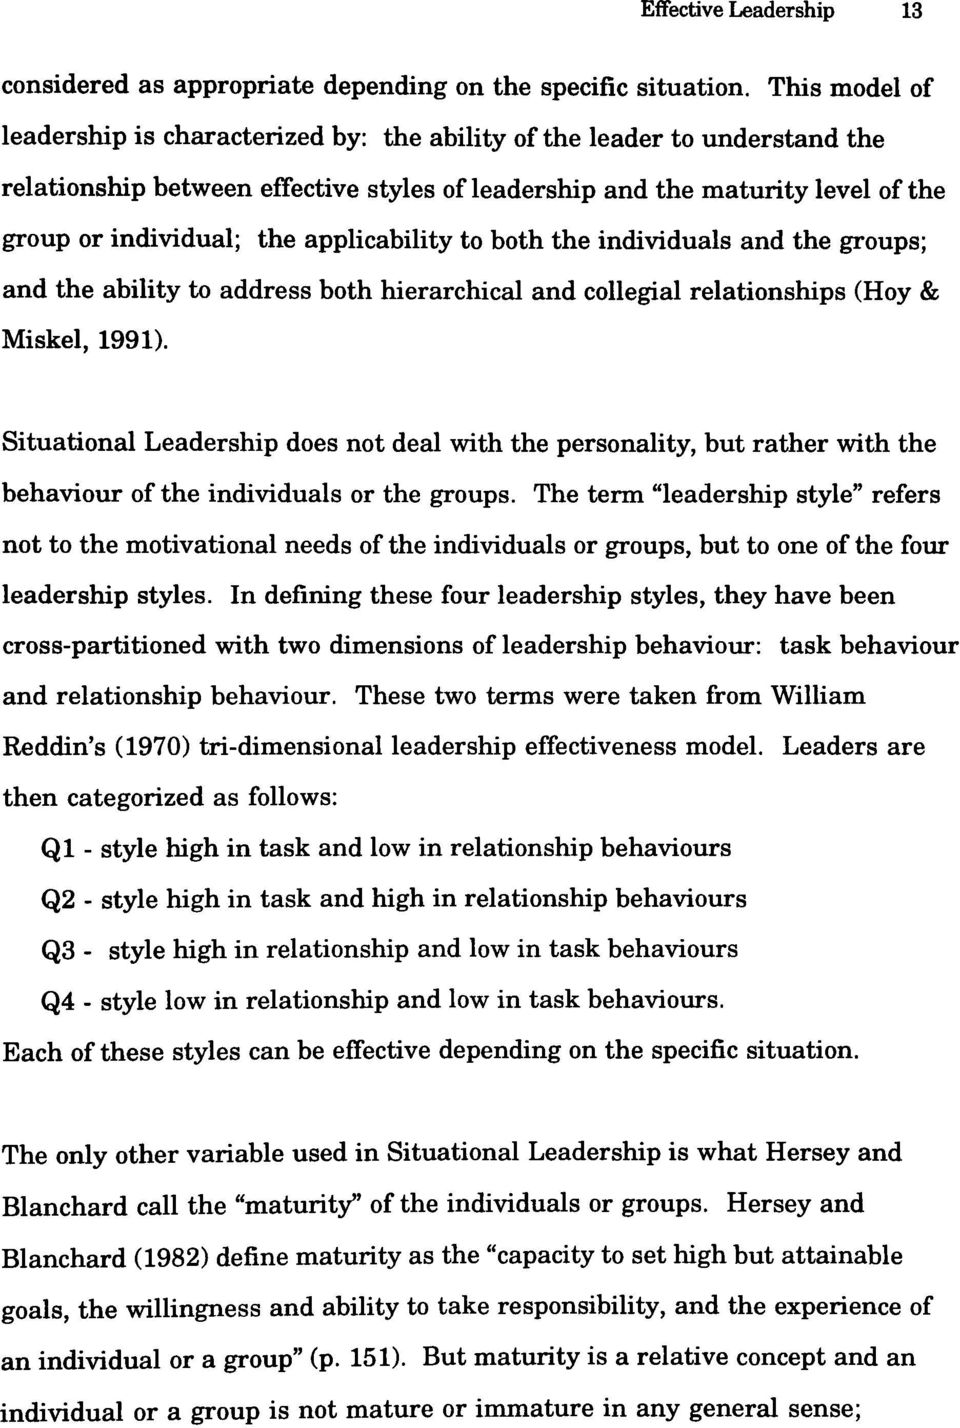 applicability to both the individuals and the groups; and the ability to address both hierarchical and collegial relationships (Hoy & Miskel, 1991).